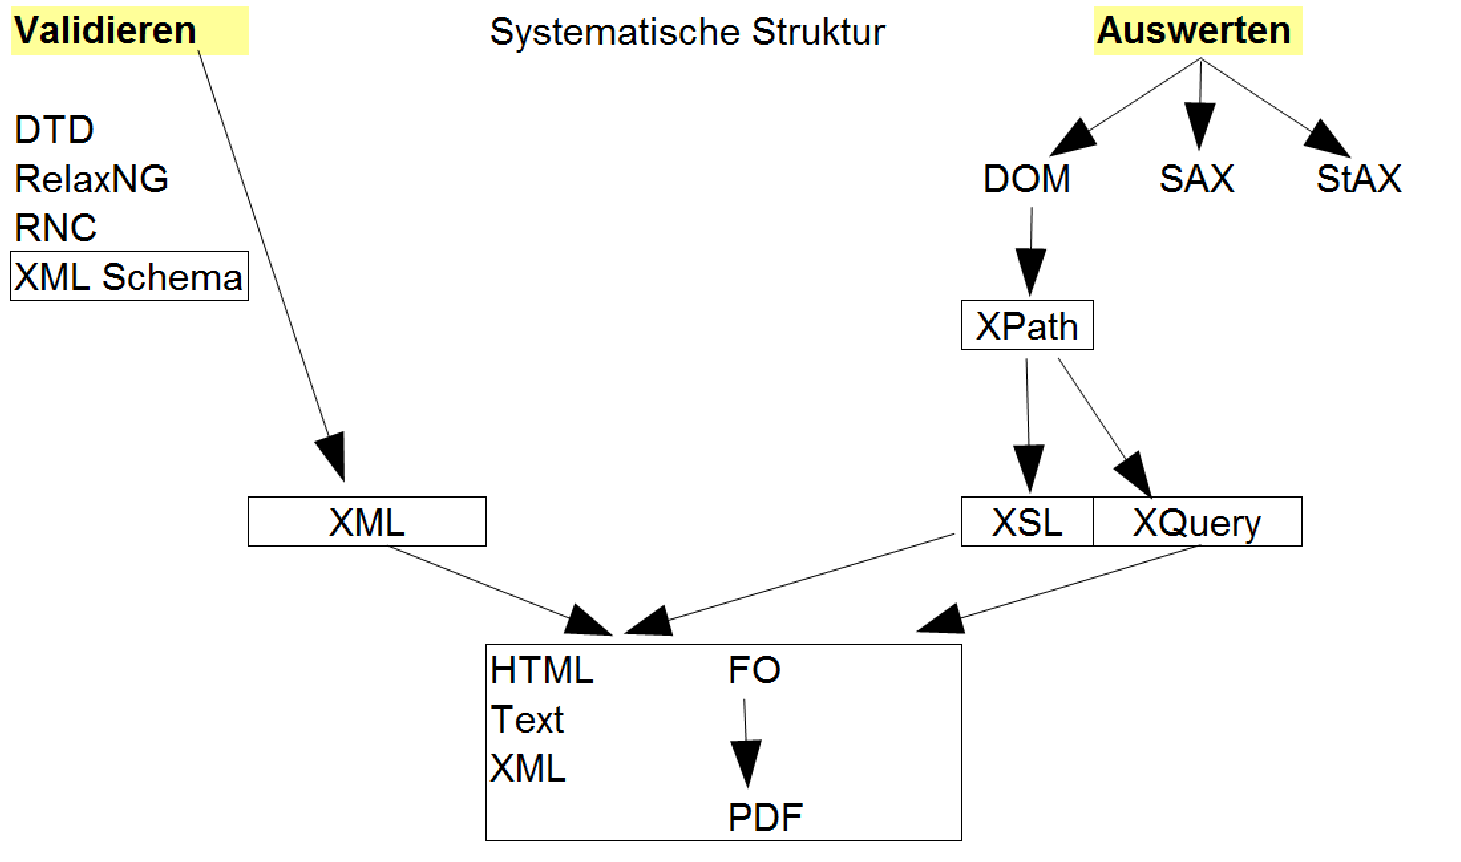 XML Basics: Elemente, Attribute, Prolog, Processing-Instruction, Namespaces, CDATA